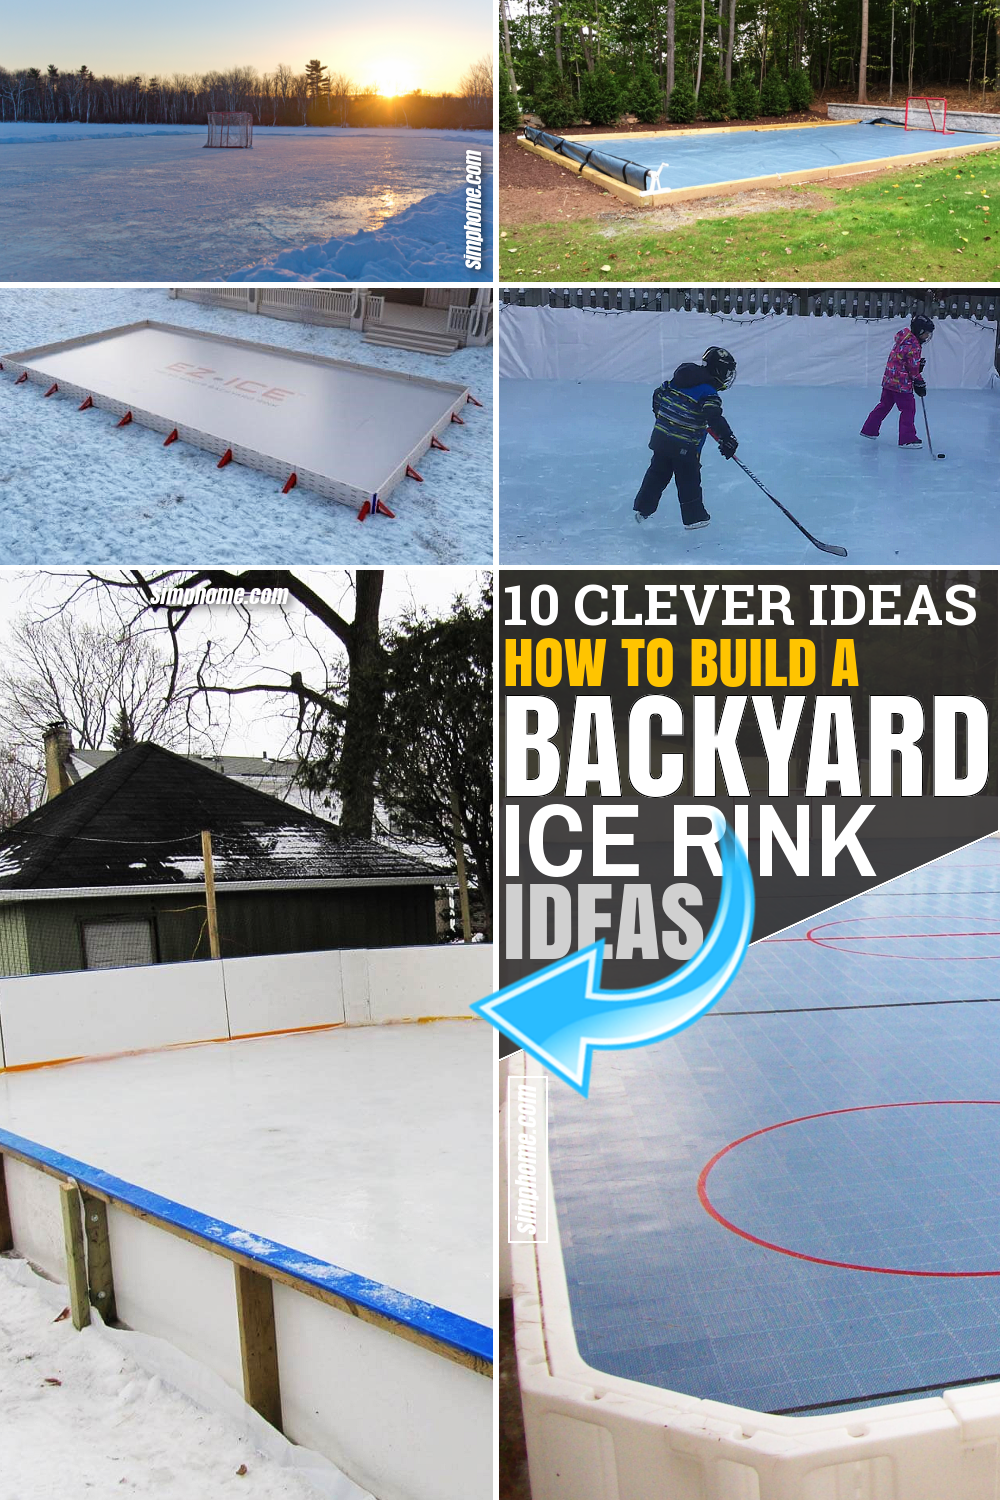 SIMPHOME.COM 10 Ways how to build a backyard ice rink ideas Featured Pinterest Image